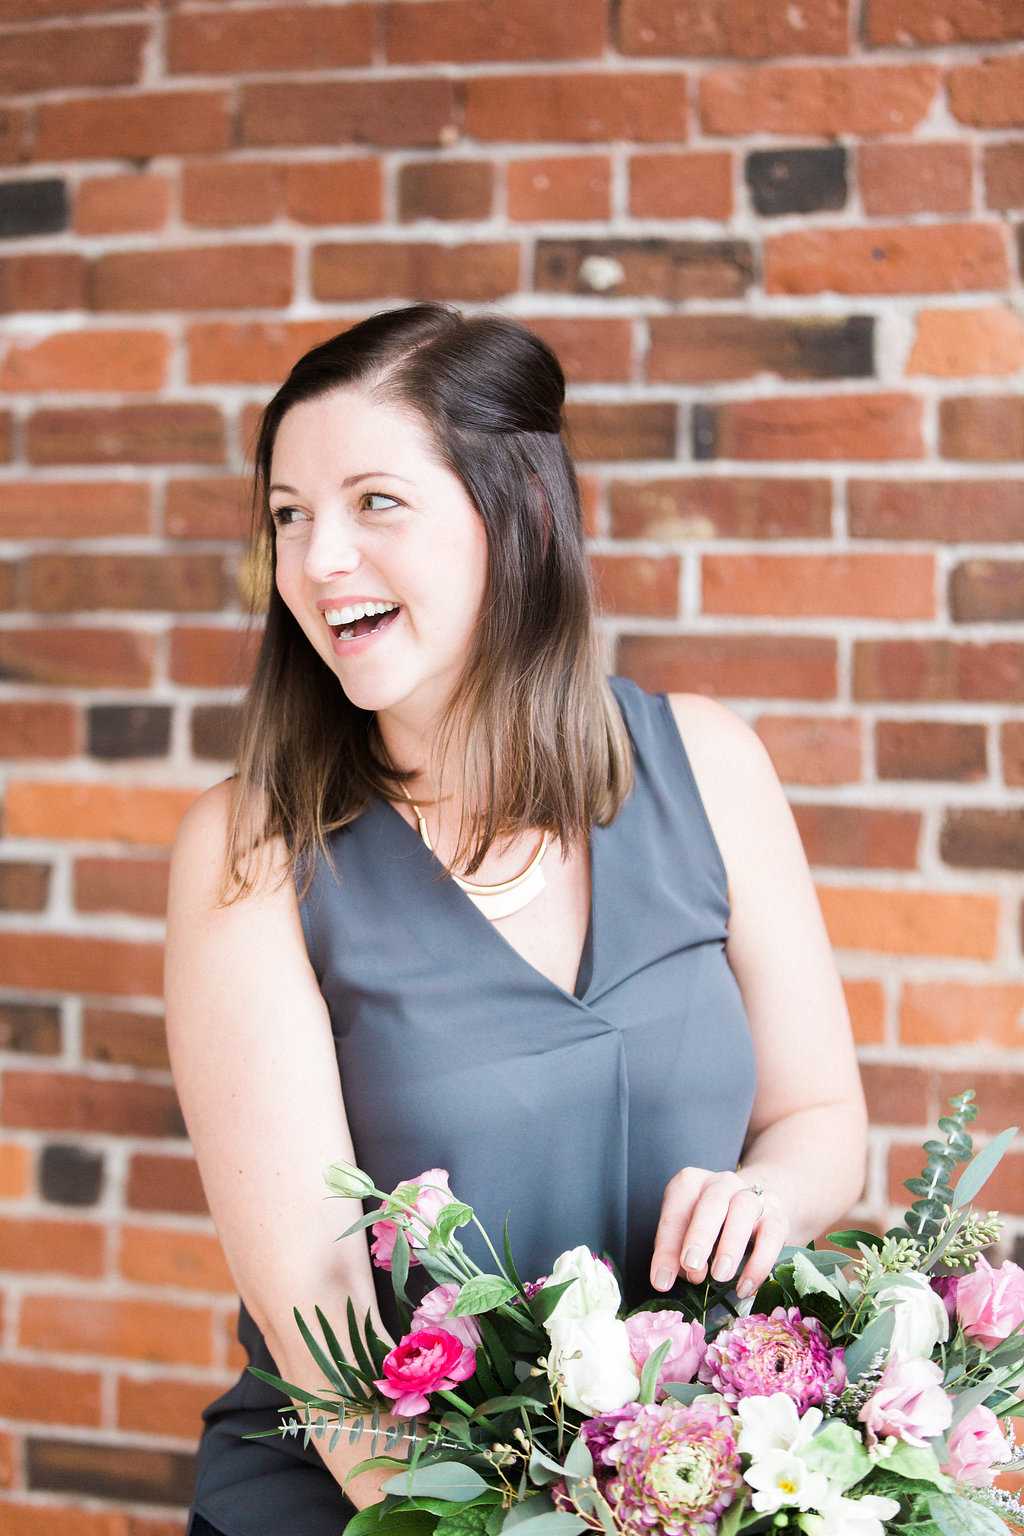 Briar Johnston - Briar knew event planning was where her energy belonged at an early age. After completing the Event Management Program at Ryerson University, she came back to Vancouver to obtain her Bachelor of Commerce and hit the ground running. Over fifteen years later and her enthusiasm is still the same! After working for a prestigious hotel in Vancouver, Briar knew her passion to the industry would be better utilized running her own company and working with clients who share the same values and guest experience expectations. Briar's passion for each event is evident in her daily work. She understands that her role is to make life-long memories and exceed client and guest expectations.